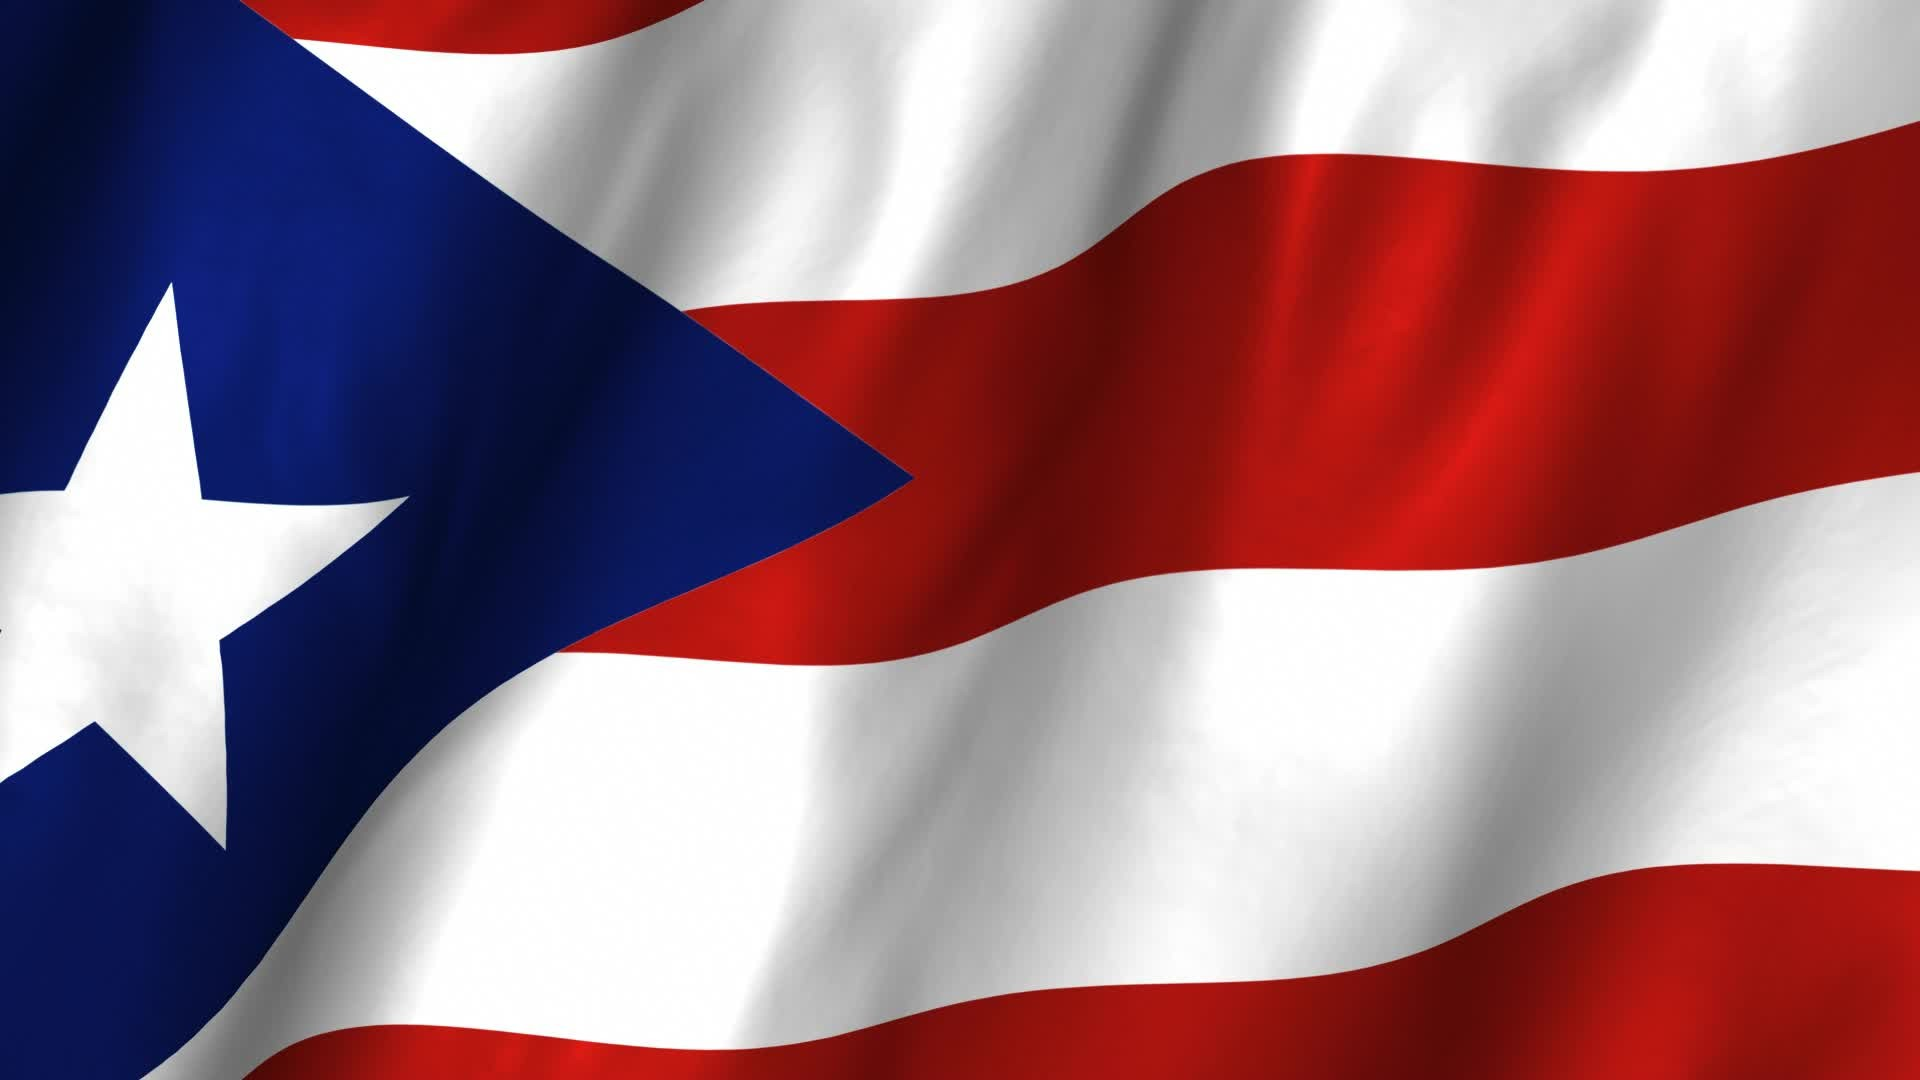 Puerto Rico Flag Wallpaper (76+ images)